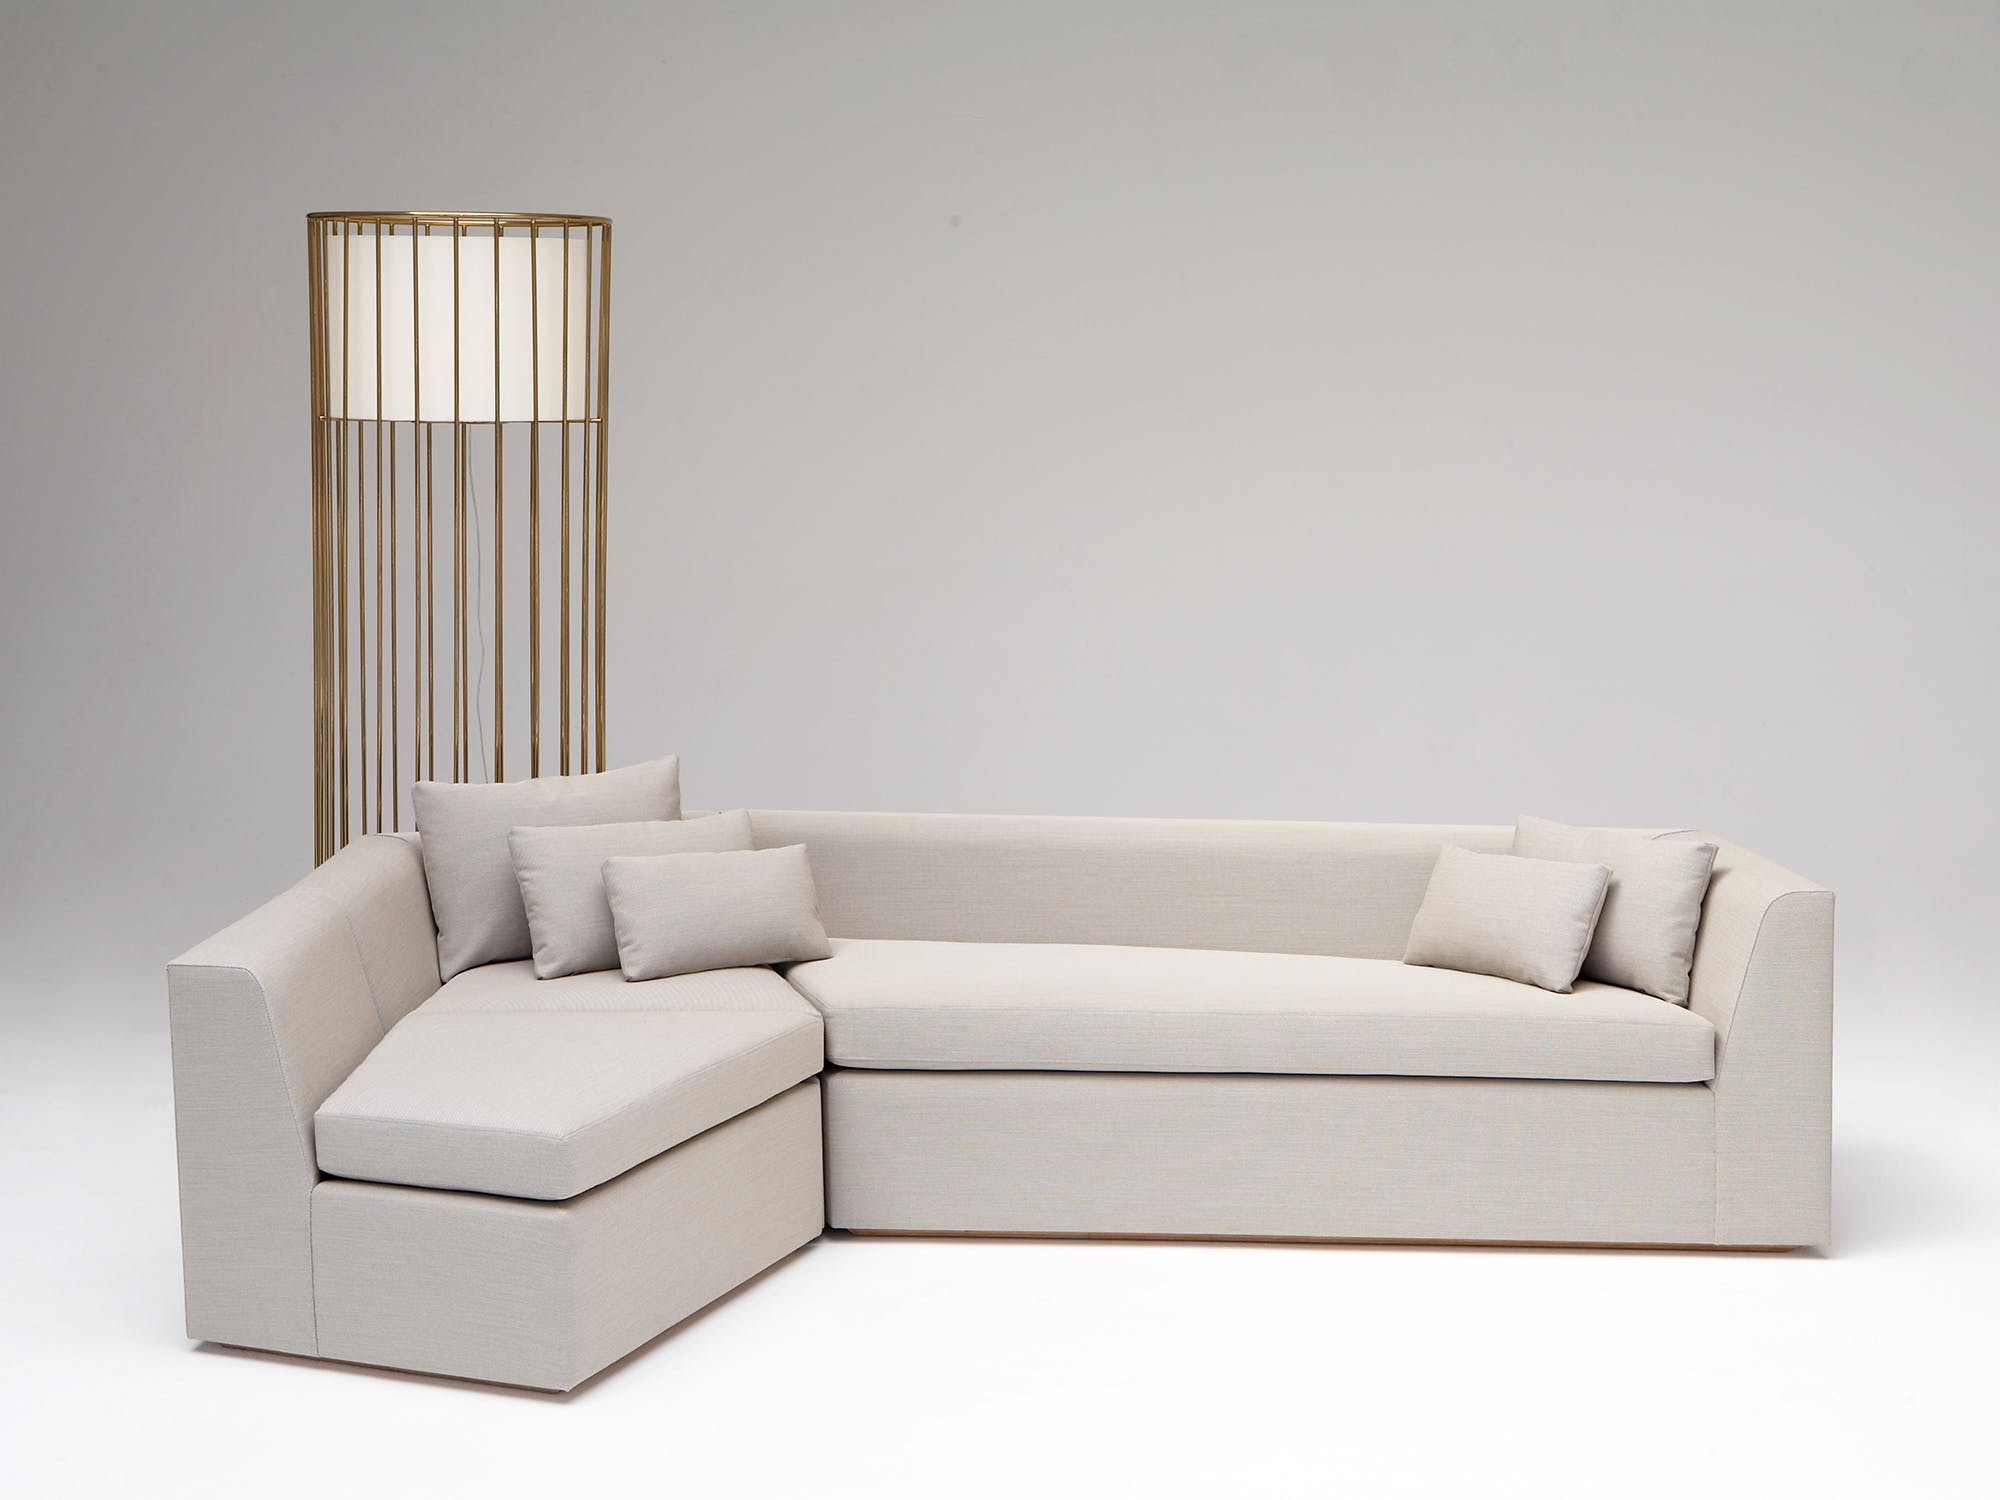 Pangaea Sofa by Phase Design